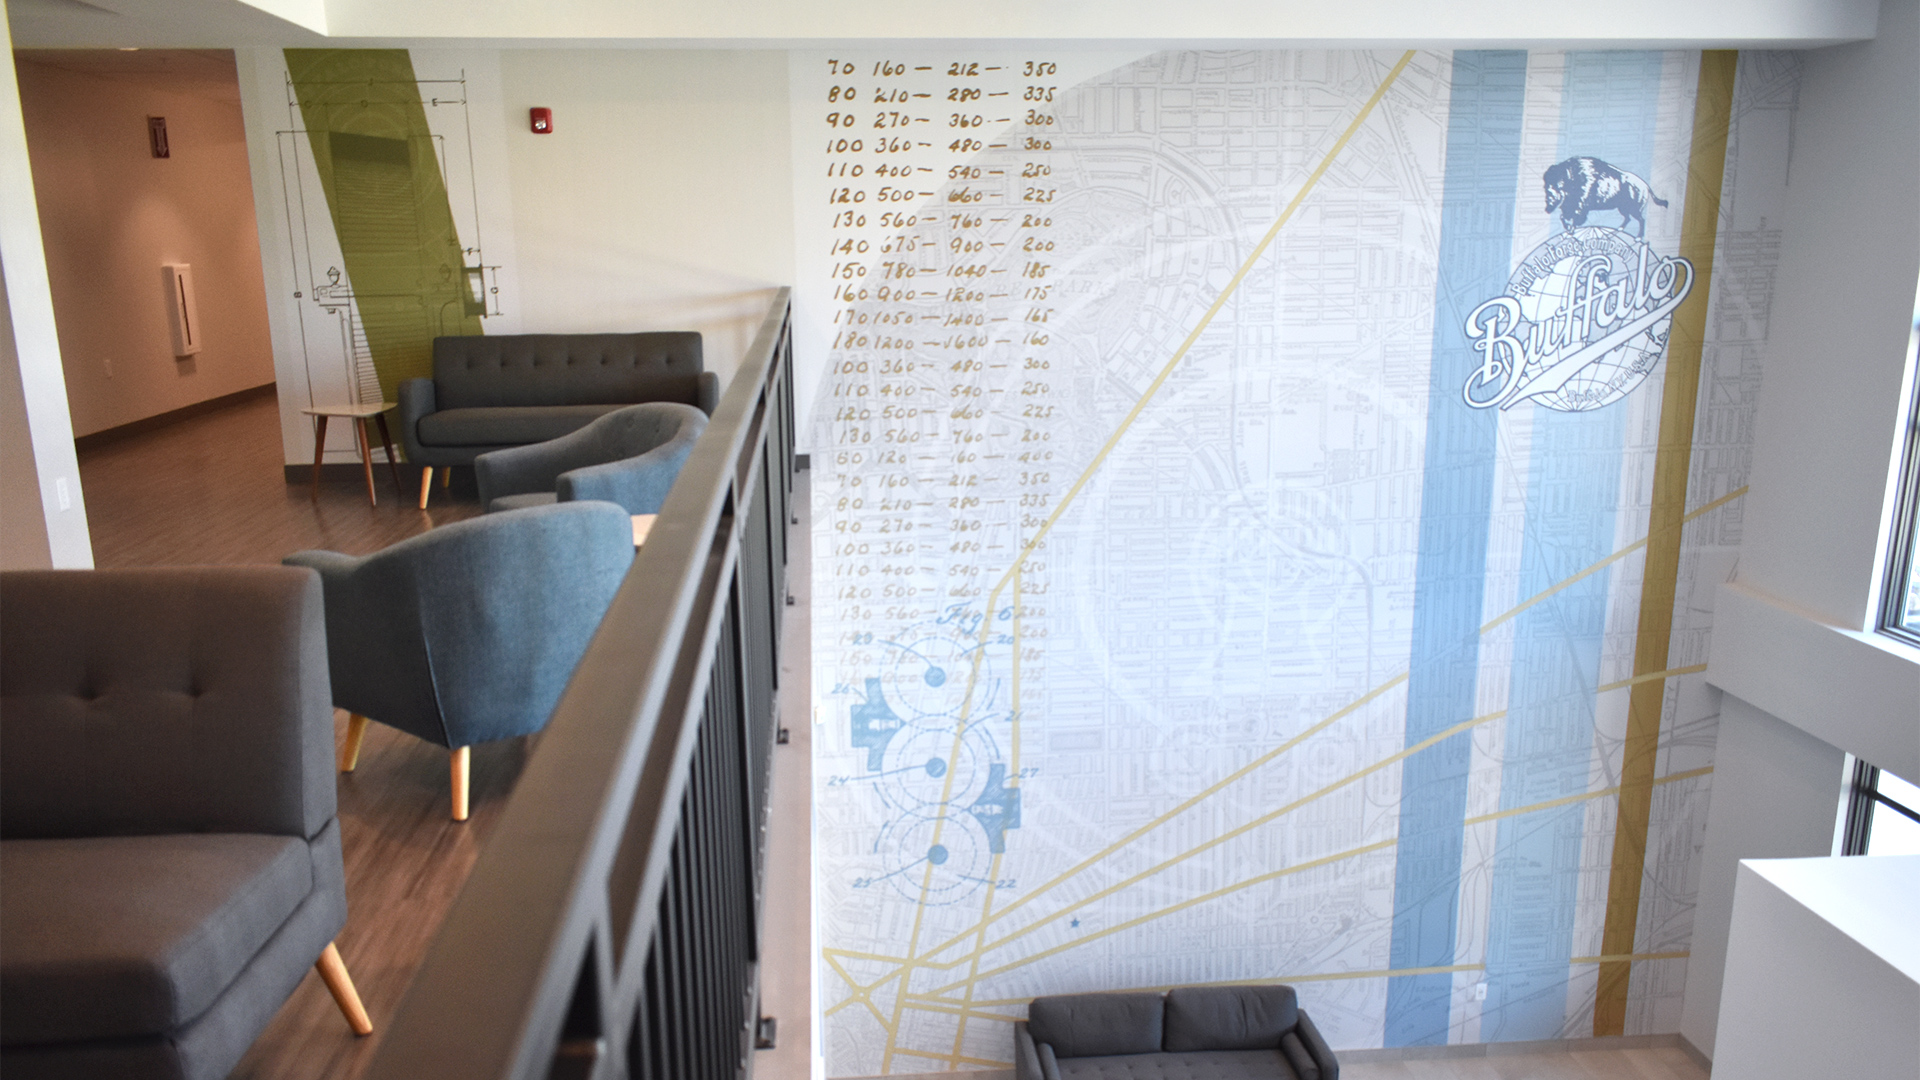 The large-scale main feature wall mural at The Forge on Broadway, designed by OtherWisz, showcases vintage Buffalo Forge graphics and a detailed map of Buffalo